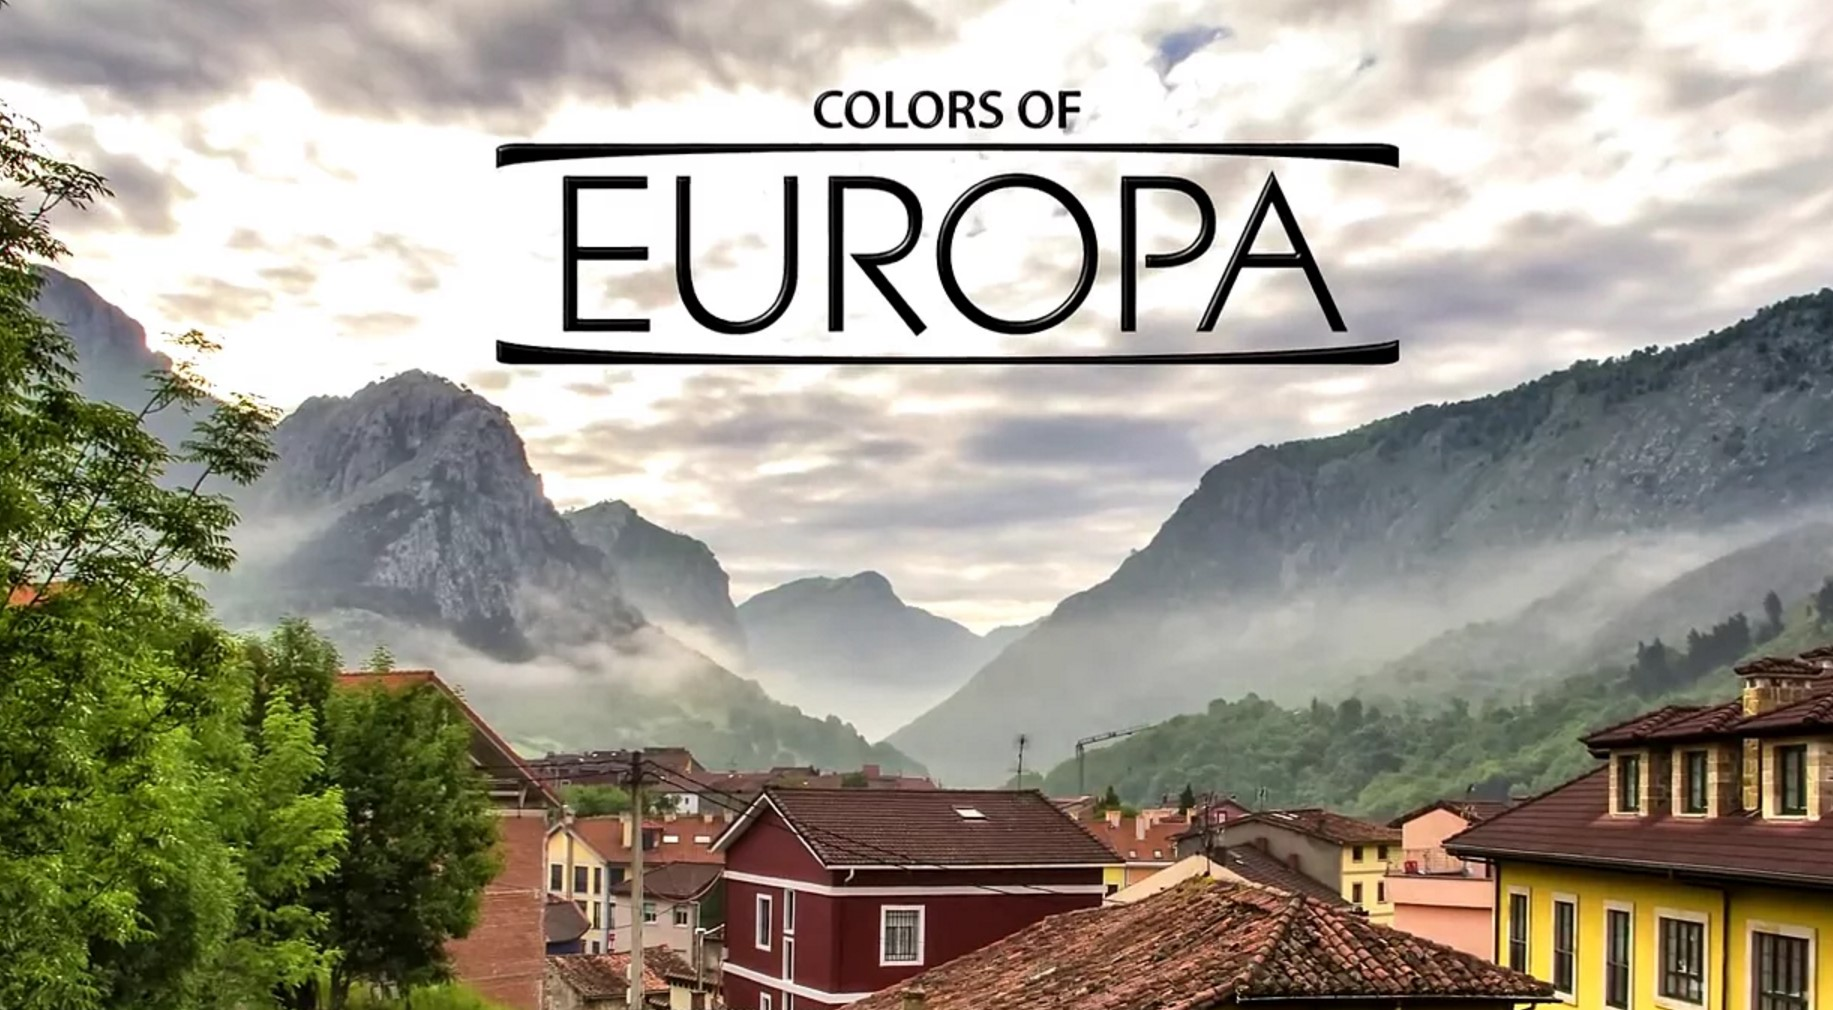 Colores de Europa (Colors of Europa)